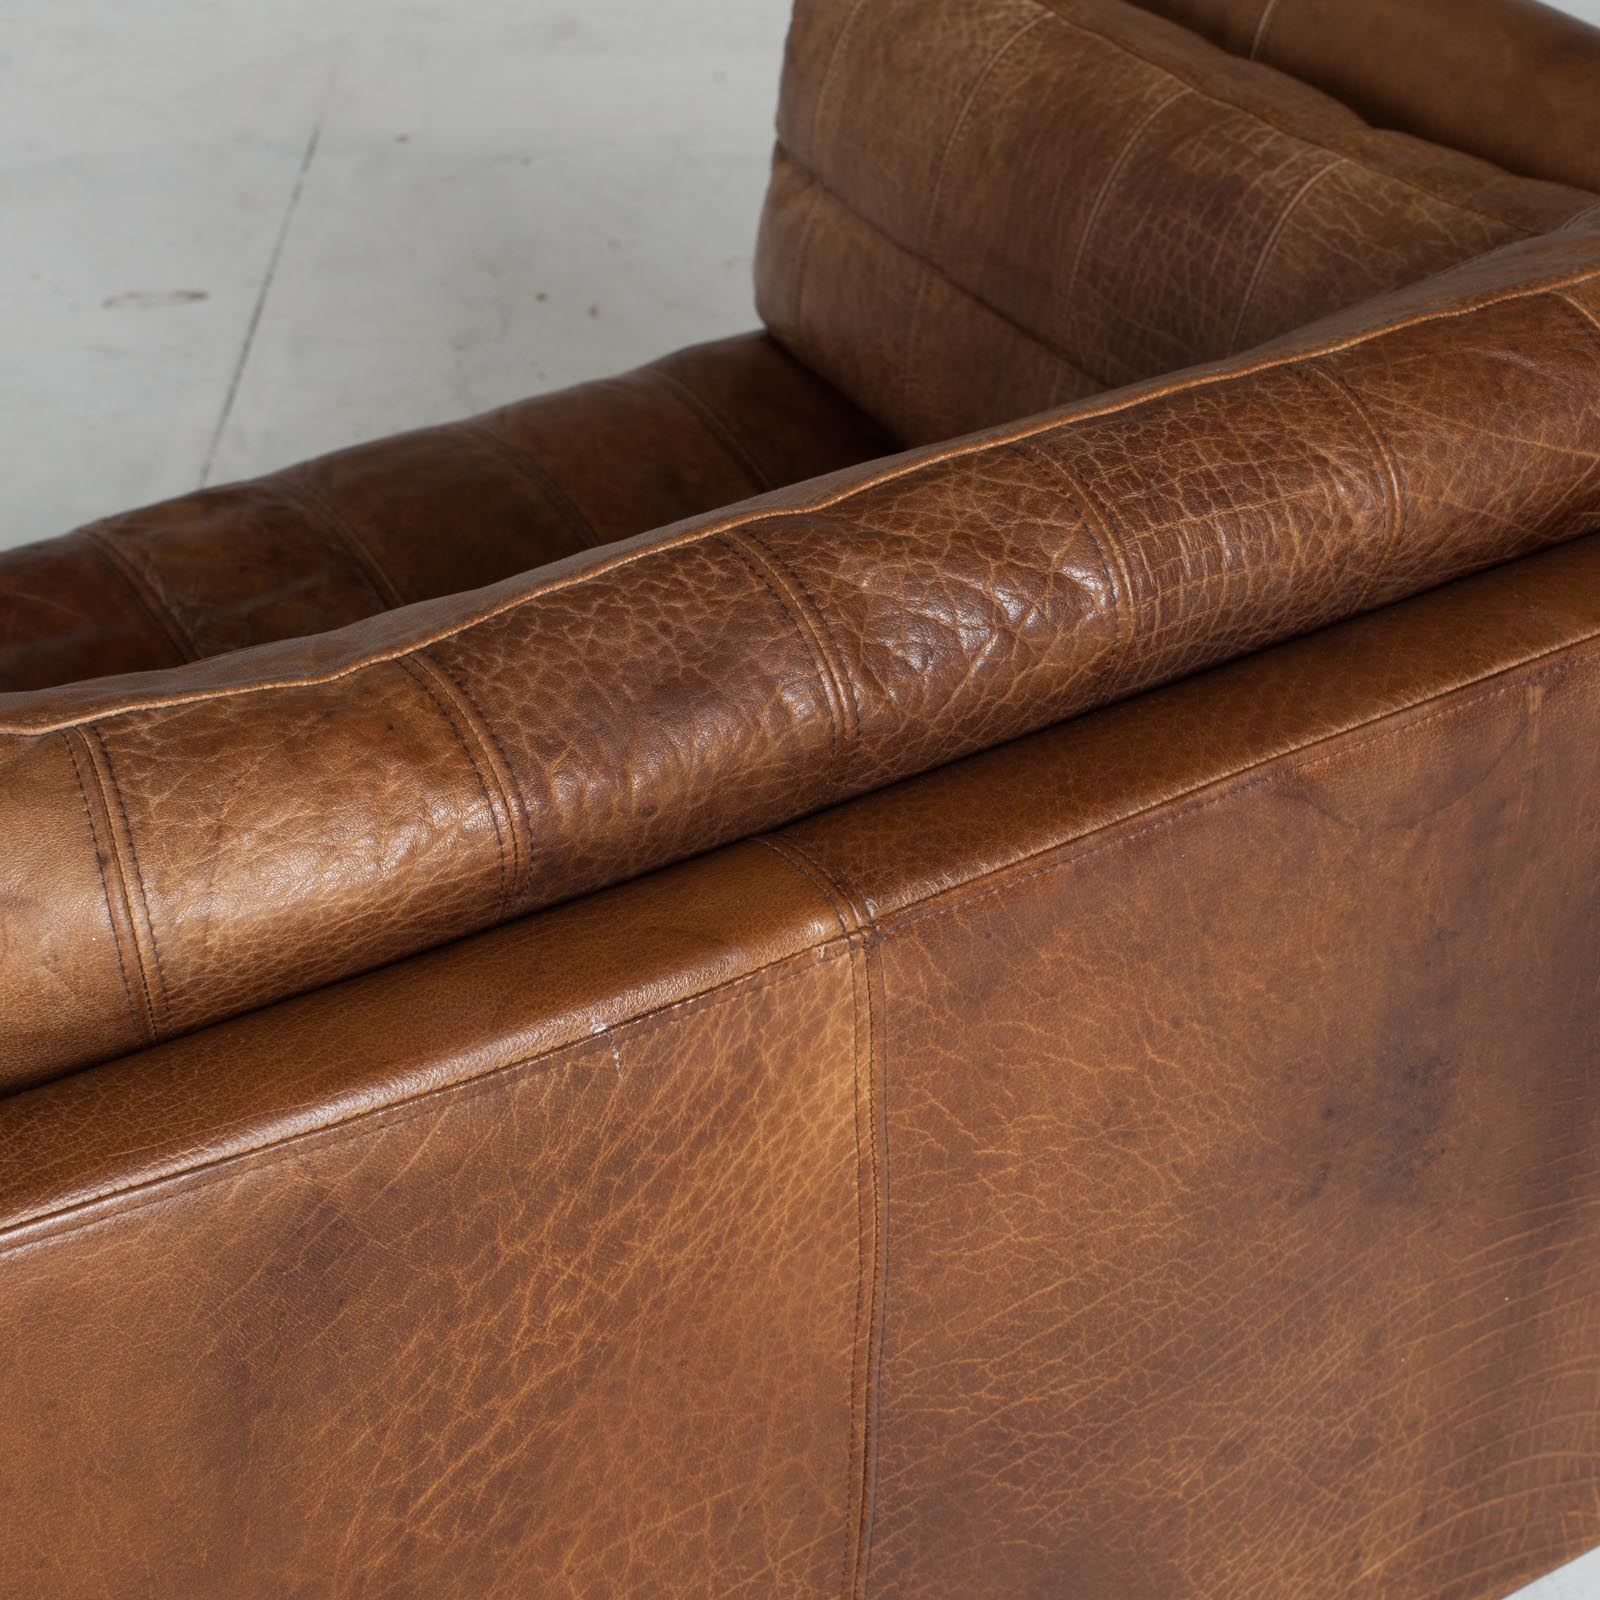 2.5 Seat Sofa In Tan Panelled Leather 1960s Denmark19